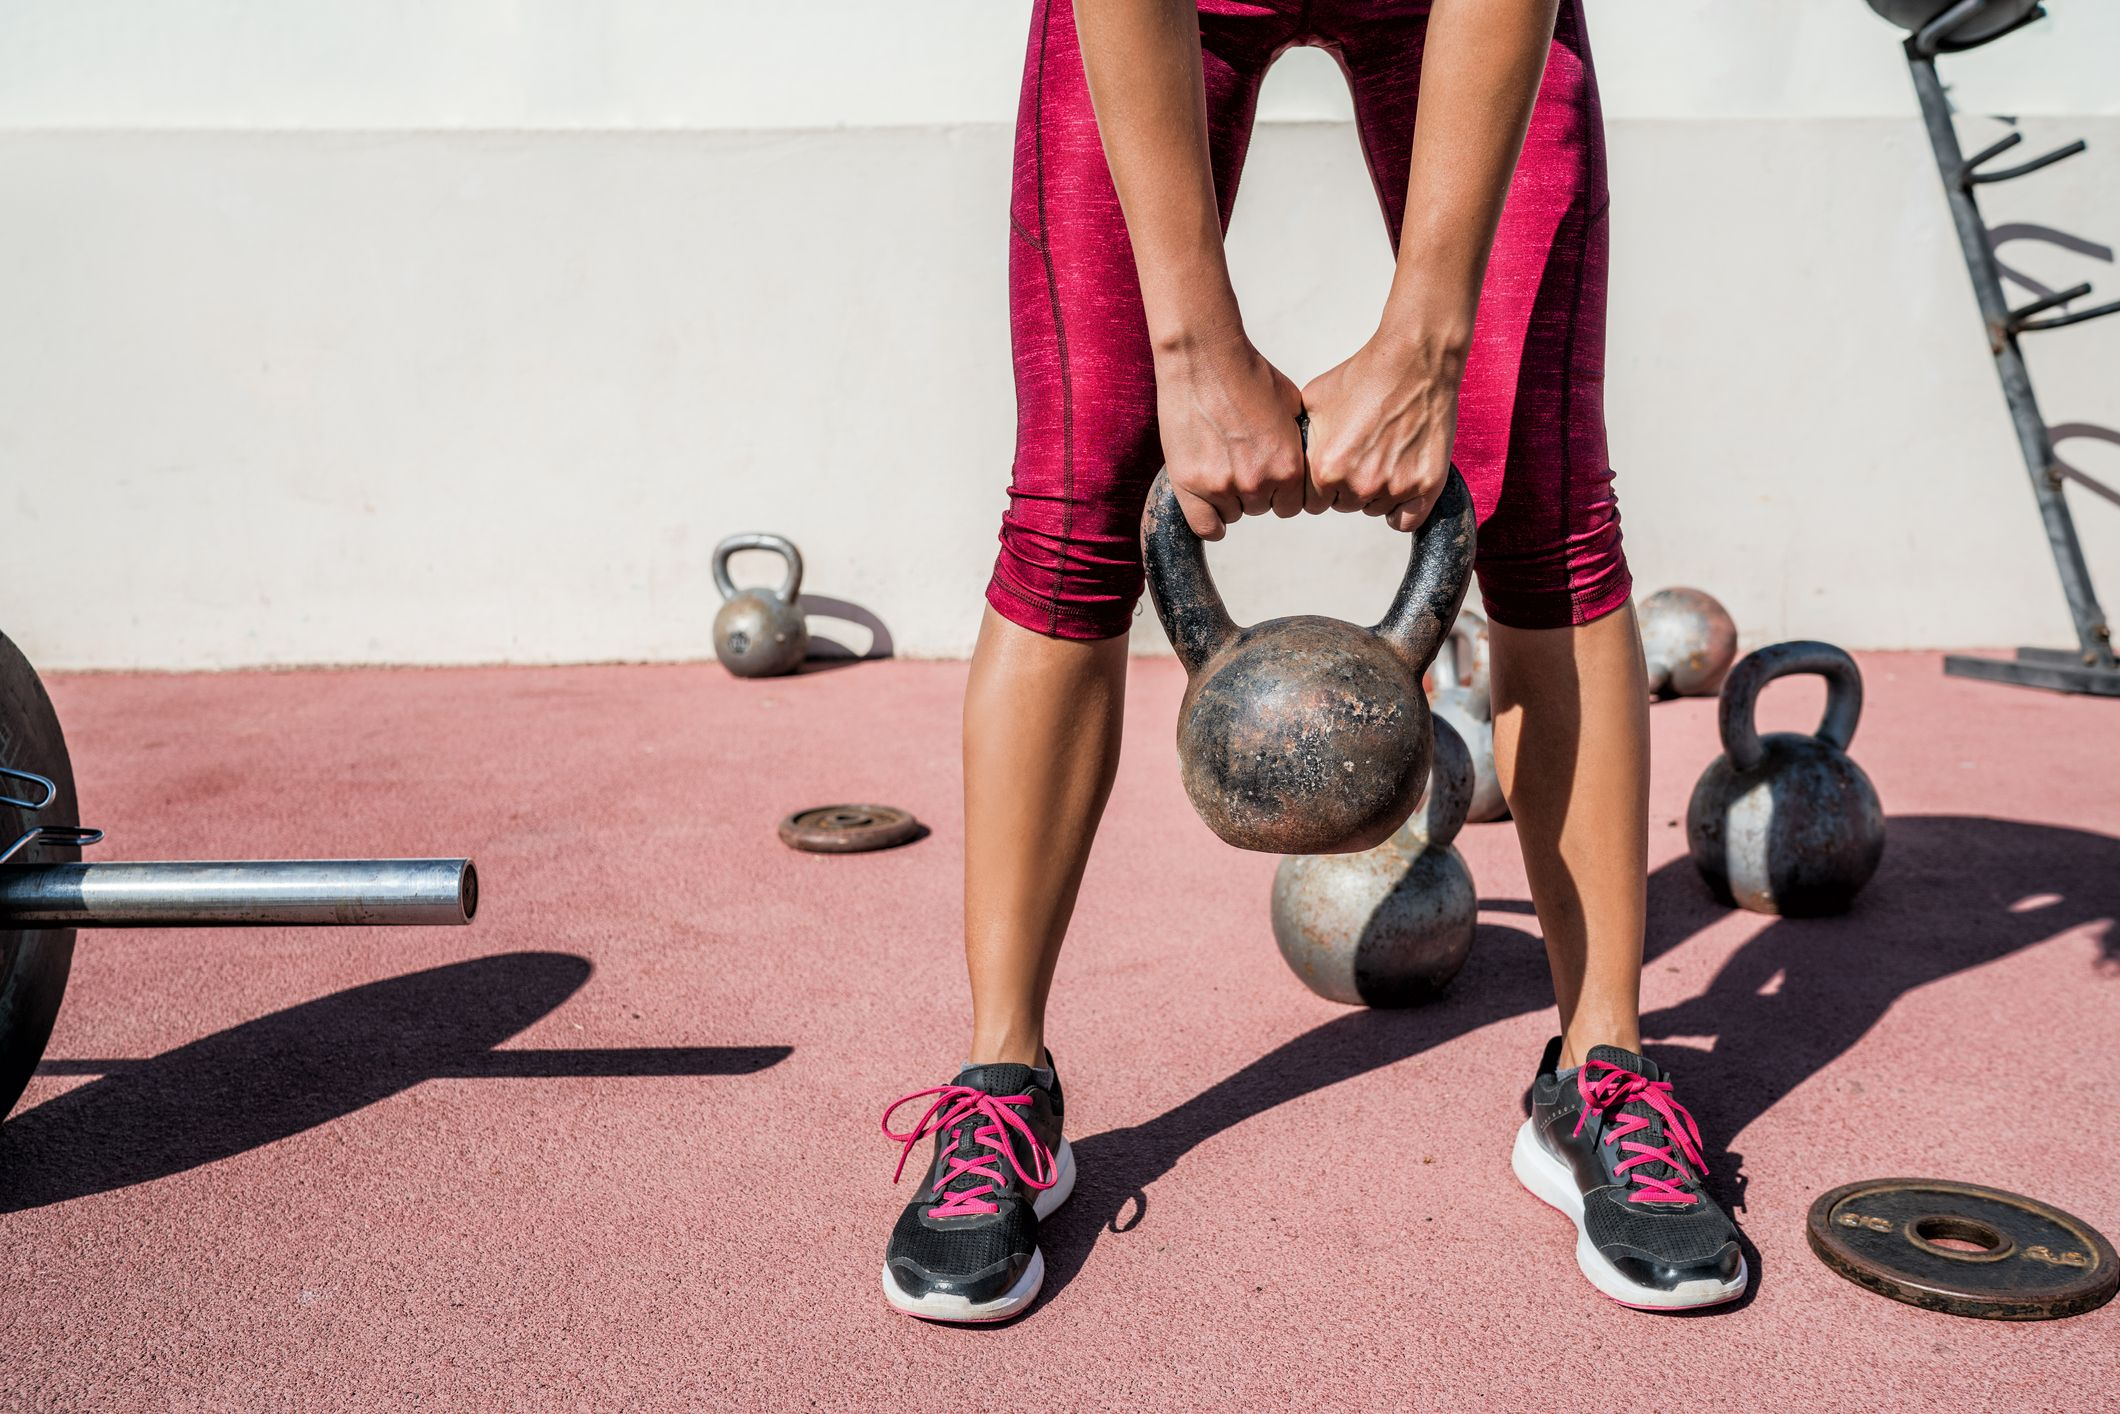 Overslept and missed the gym? No problem. 6pm is actually the best time to workout